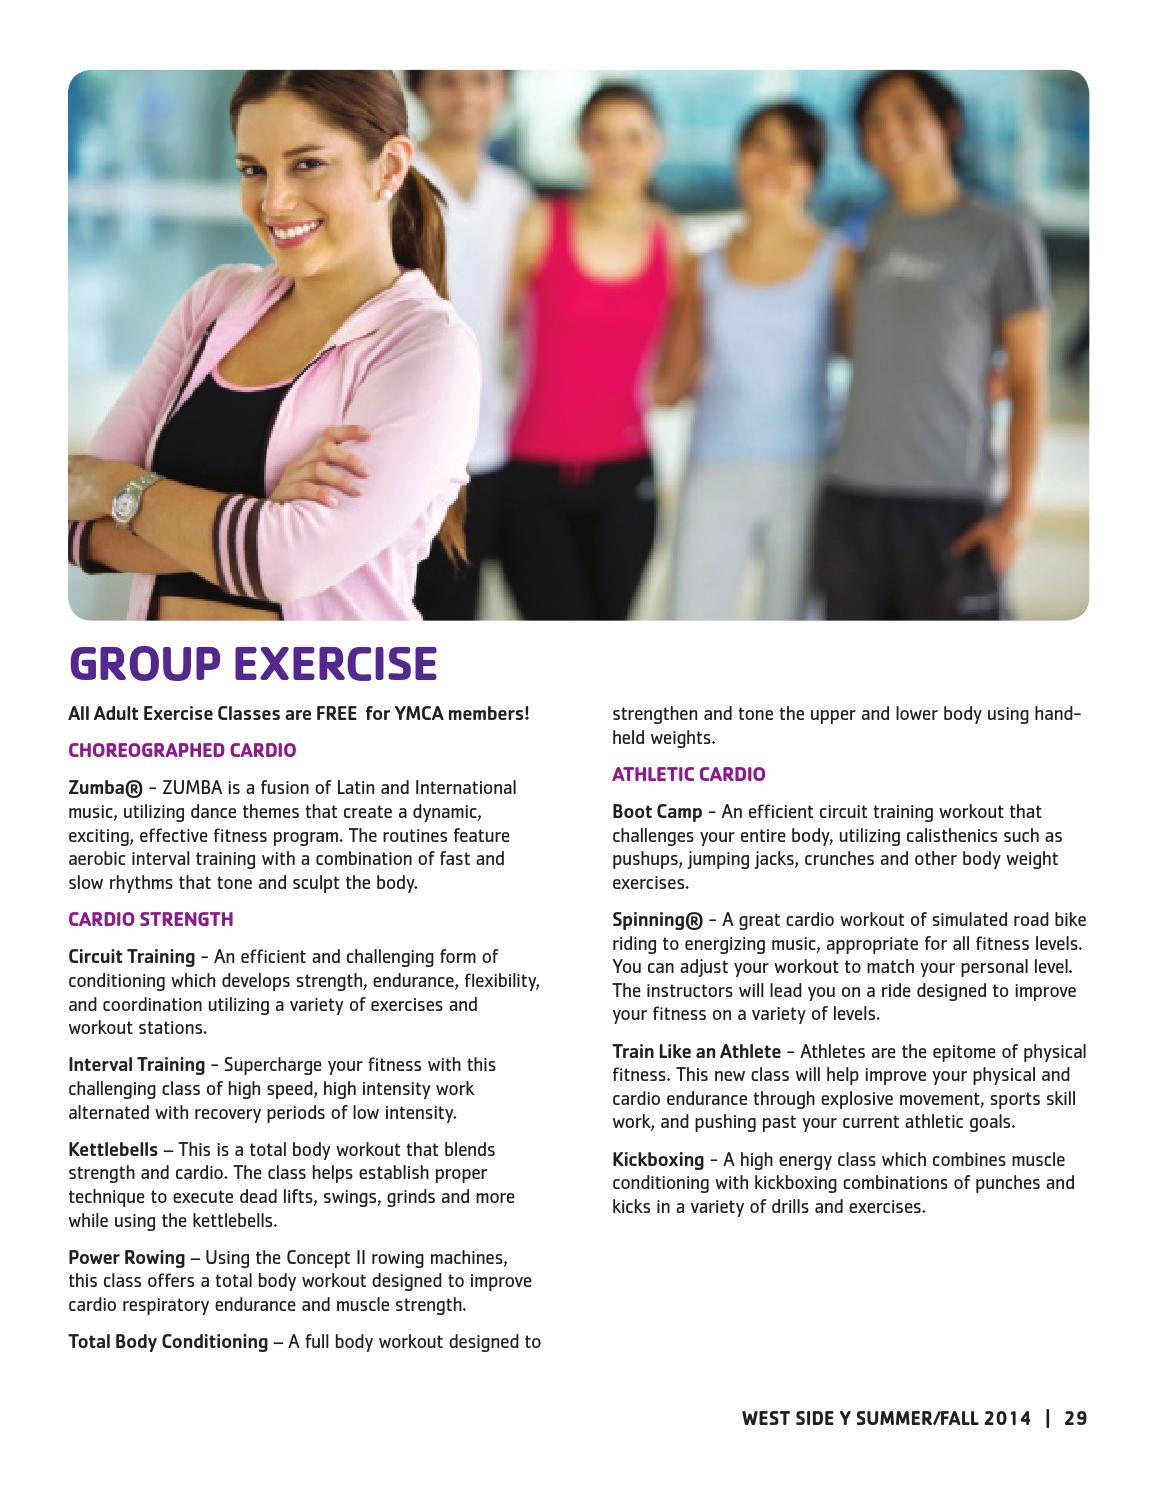 Fall Guide West Side By New York Citys Ymca Issuu Cardio Circuit Workout Another Great Without Needing